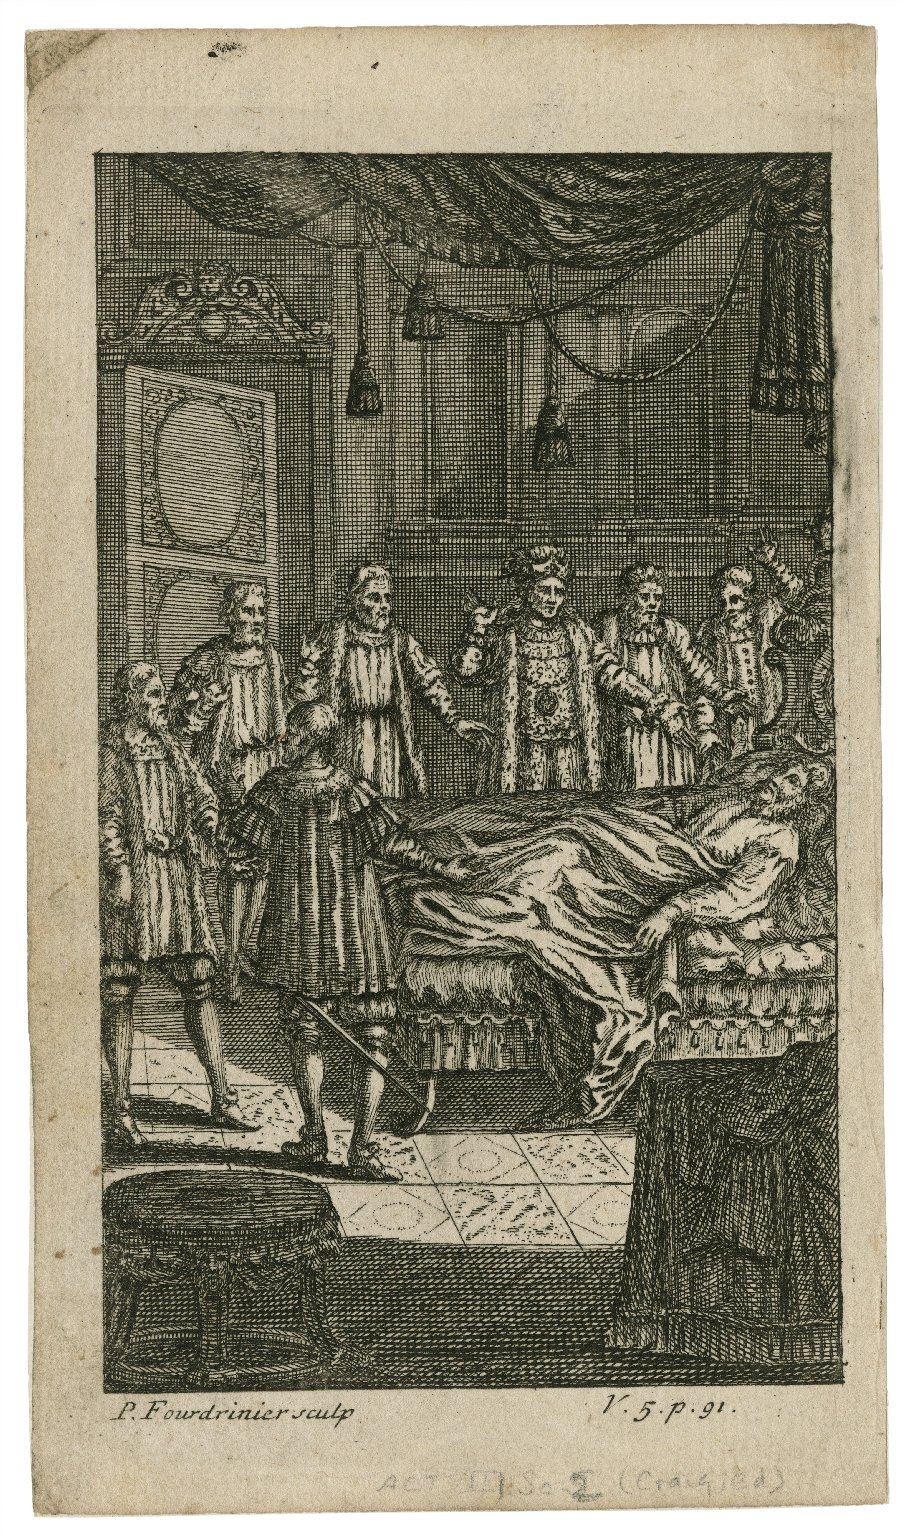 [King Henry VI, part 2, act III, sc. 2] [graphic] / P. Fourdrinier, sculp.